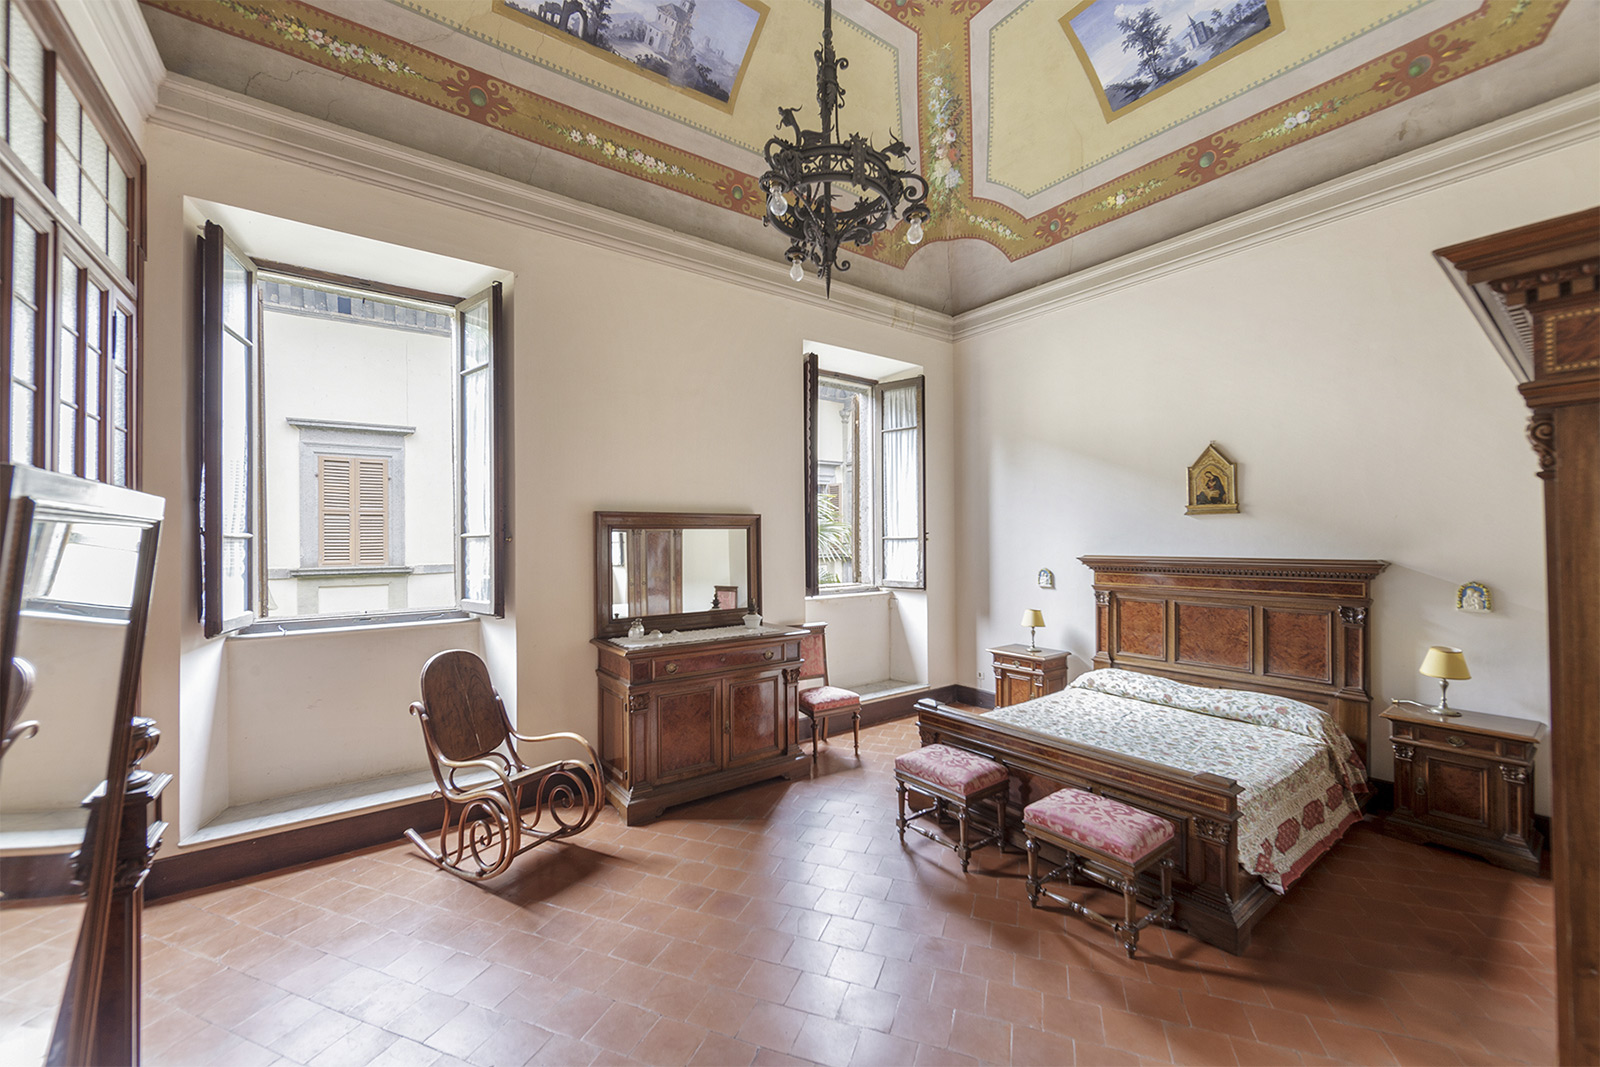 Frescoed palazzo hits the market for €2.5m in Acquapendente